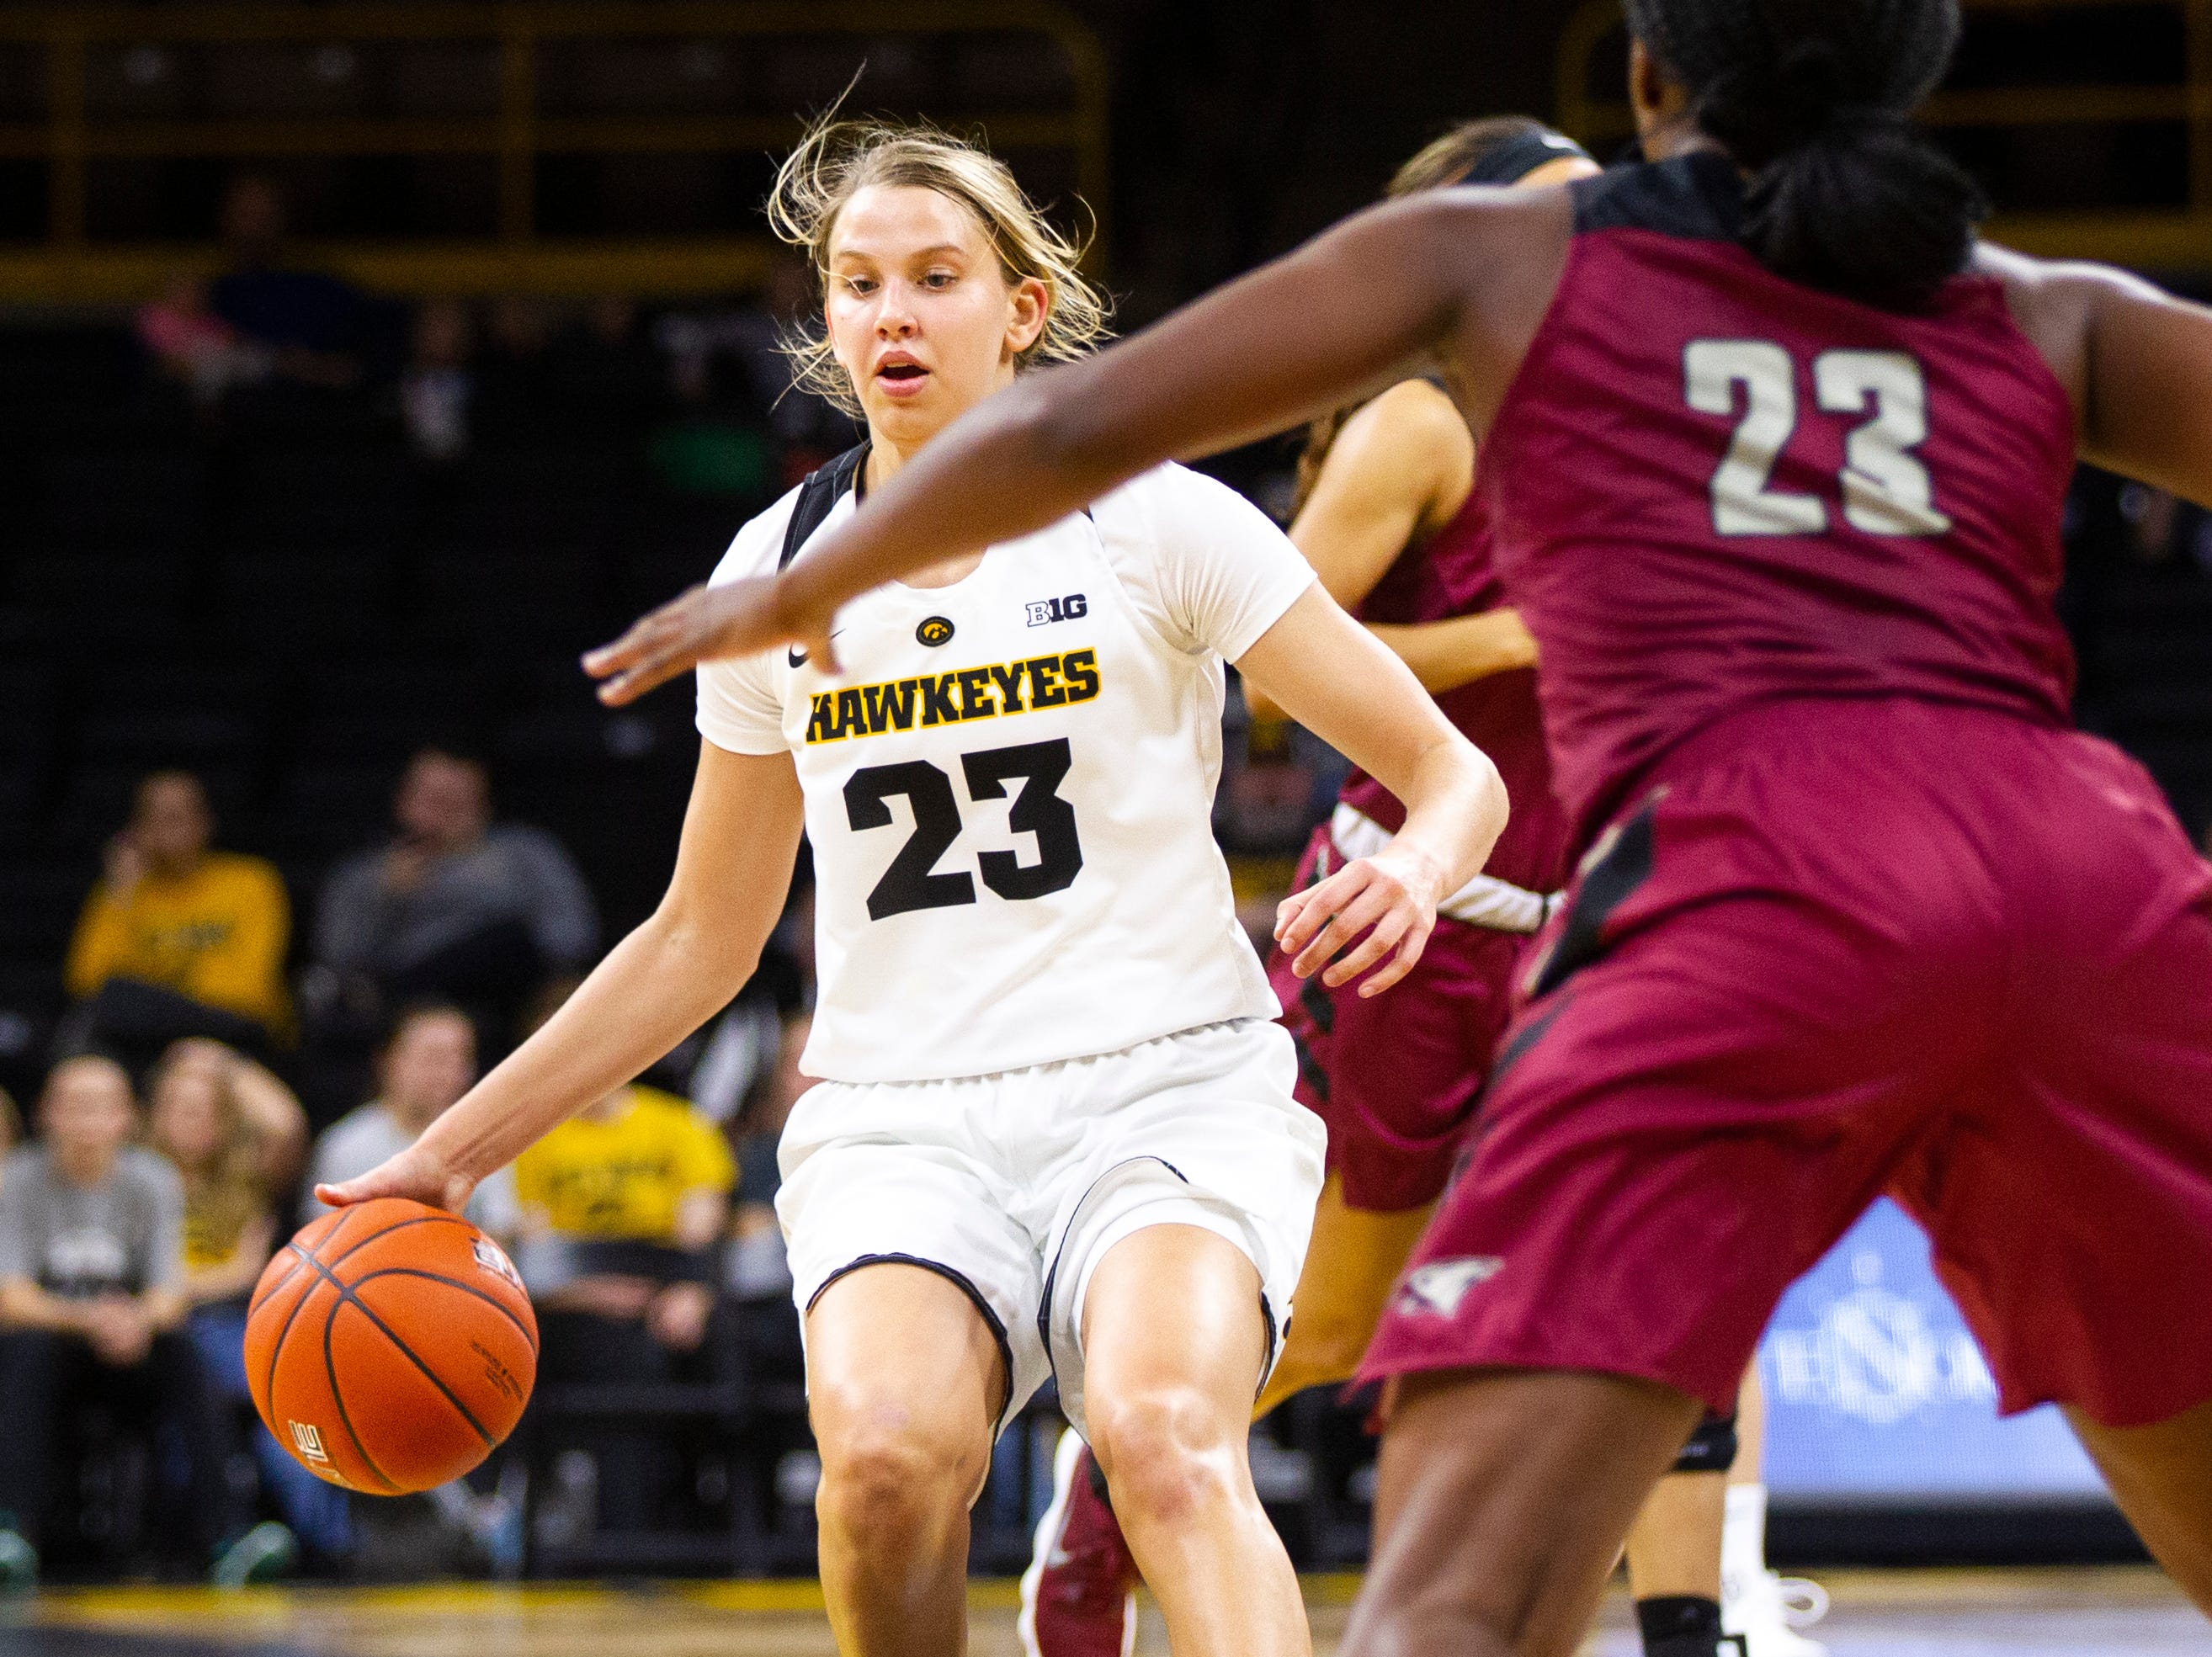 Iowa forward Logan Cook (23) looks to pass during an NCAA women's basketball game on Saturday, Nov. 17, 2018, at Carver-Hawkeye Arena in Iowa City.